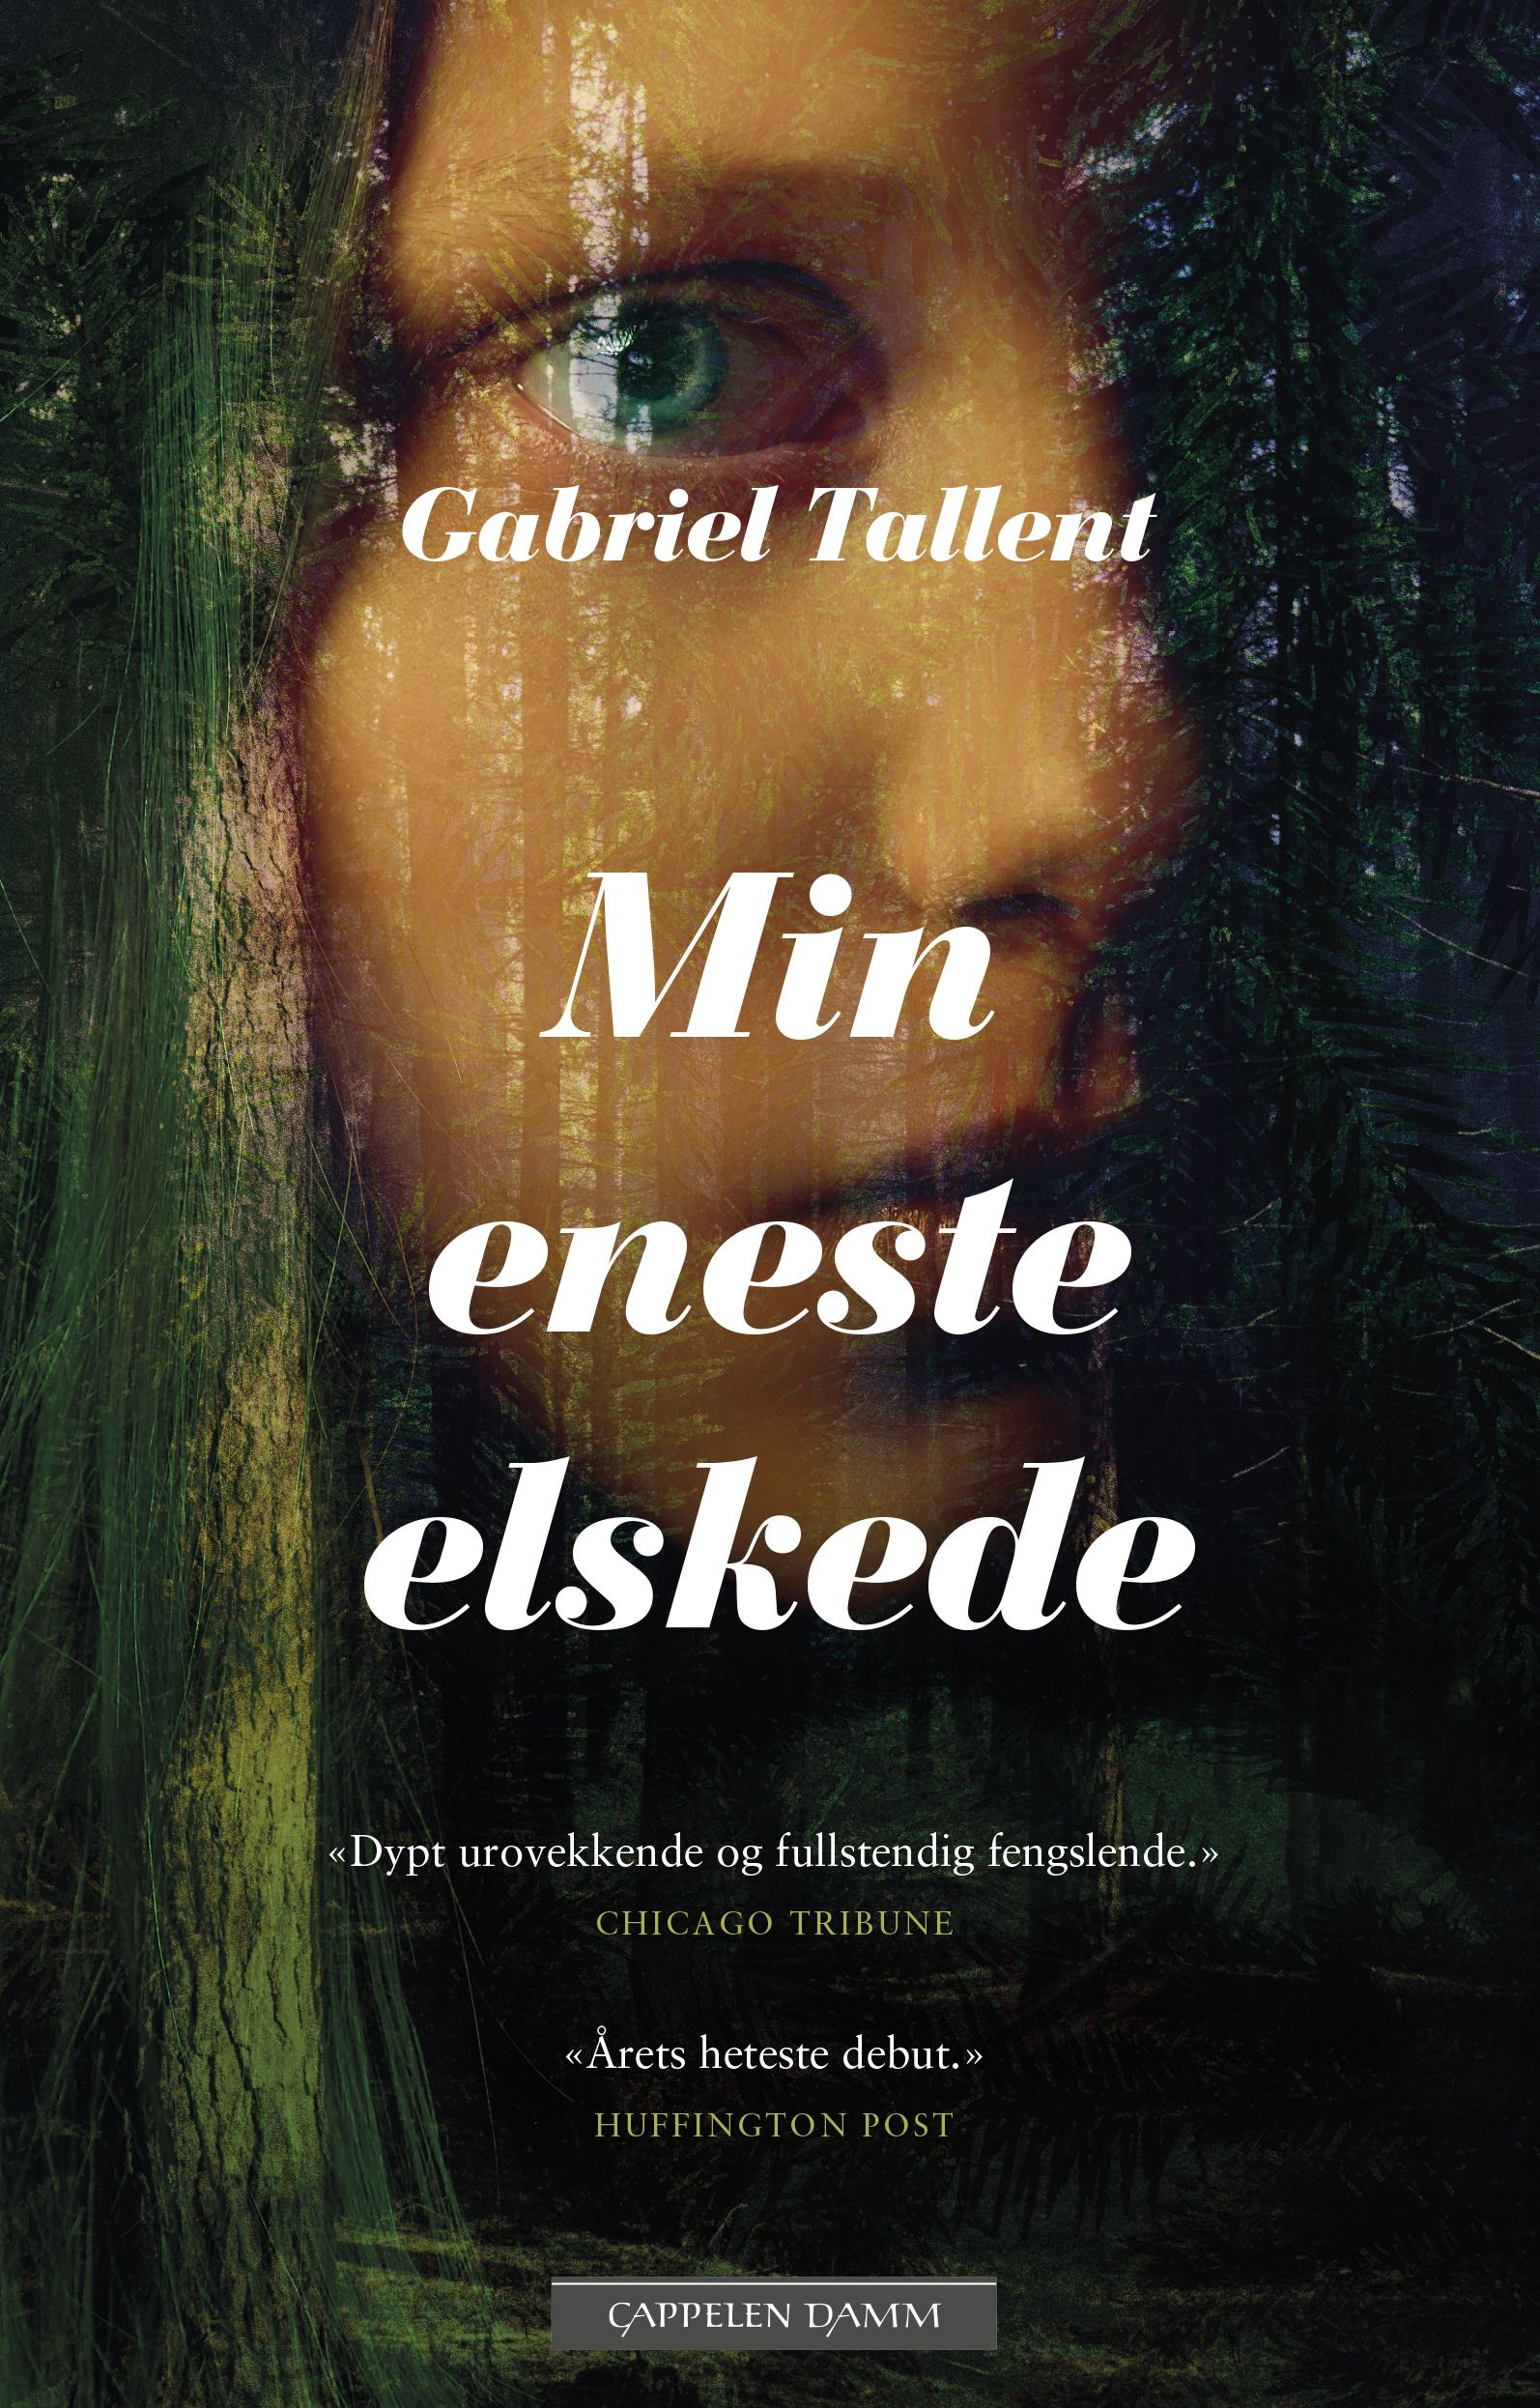 Cruel and beautiful! Book review: Gabriel Tallent: